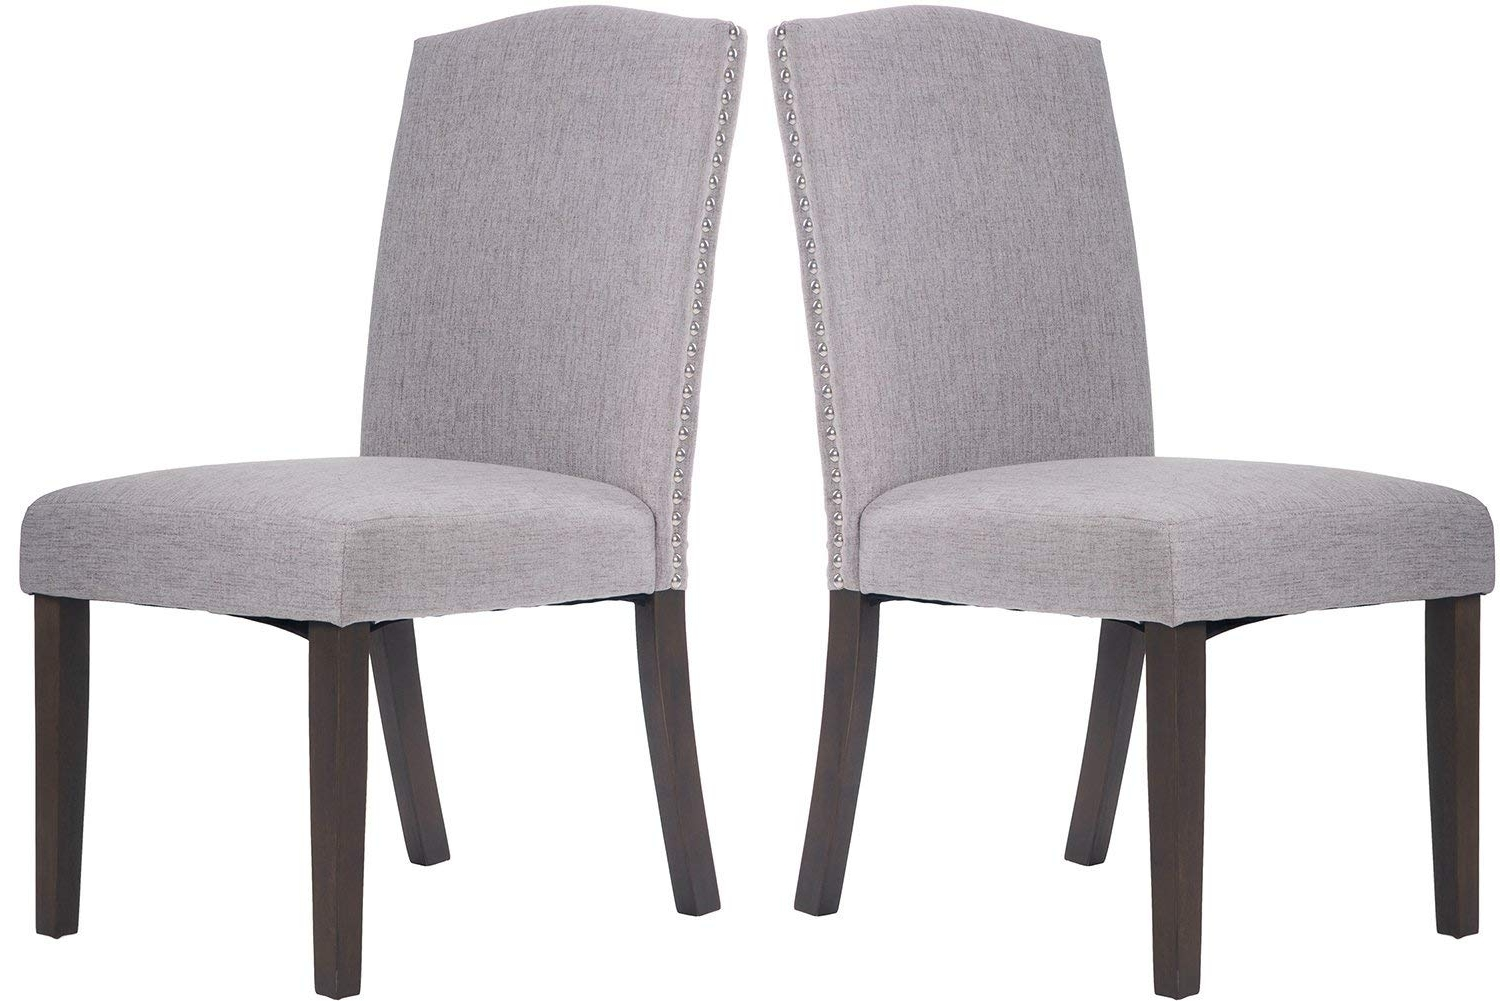 Merax Fabric Dining Chairs Set Of 2 With Solid Wood Legs Room For Most Recently Released Fabric Dining Room Chairs (Gallery 9 of 25)